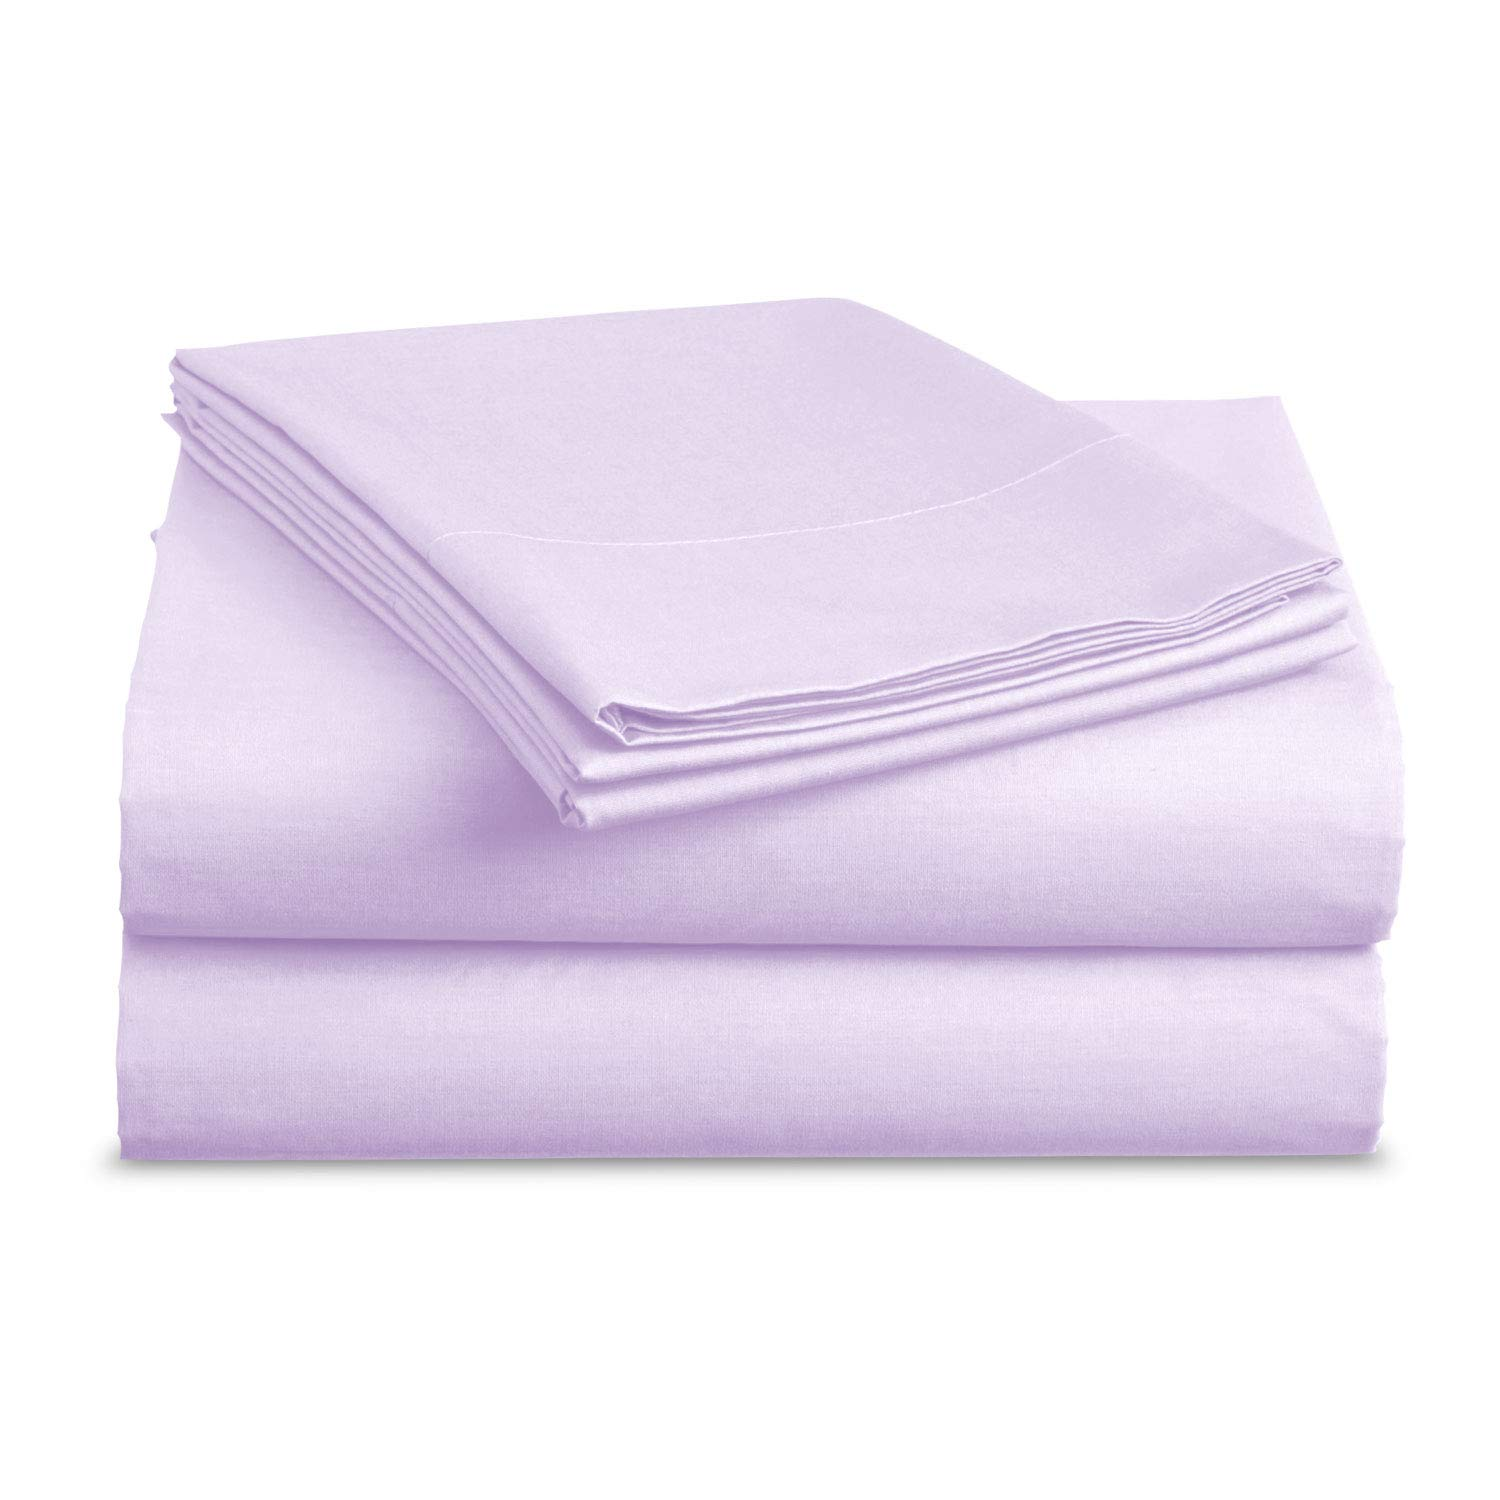 BASIC CHOICE Bed Sheet Set - Brushed Microfiber 2000 Bedding - Wrinkle, Fade, Stain Resistant - Hypoallergenic - 3 Piece (Twin, Lavender)